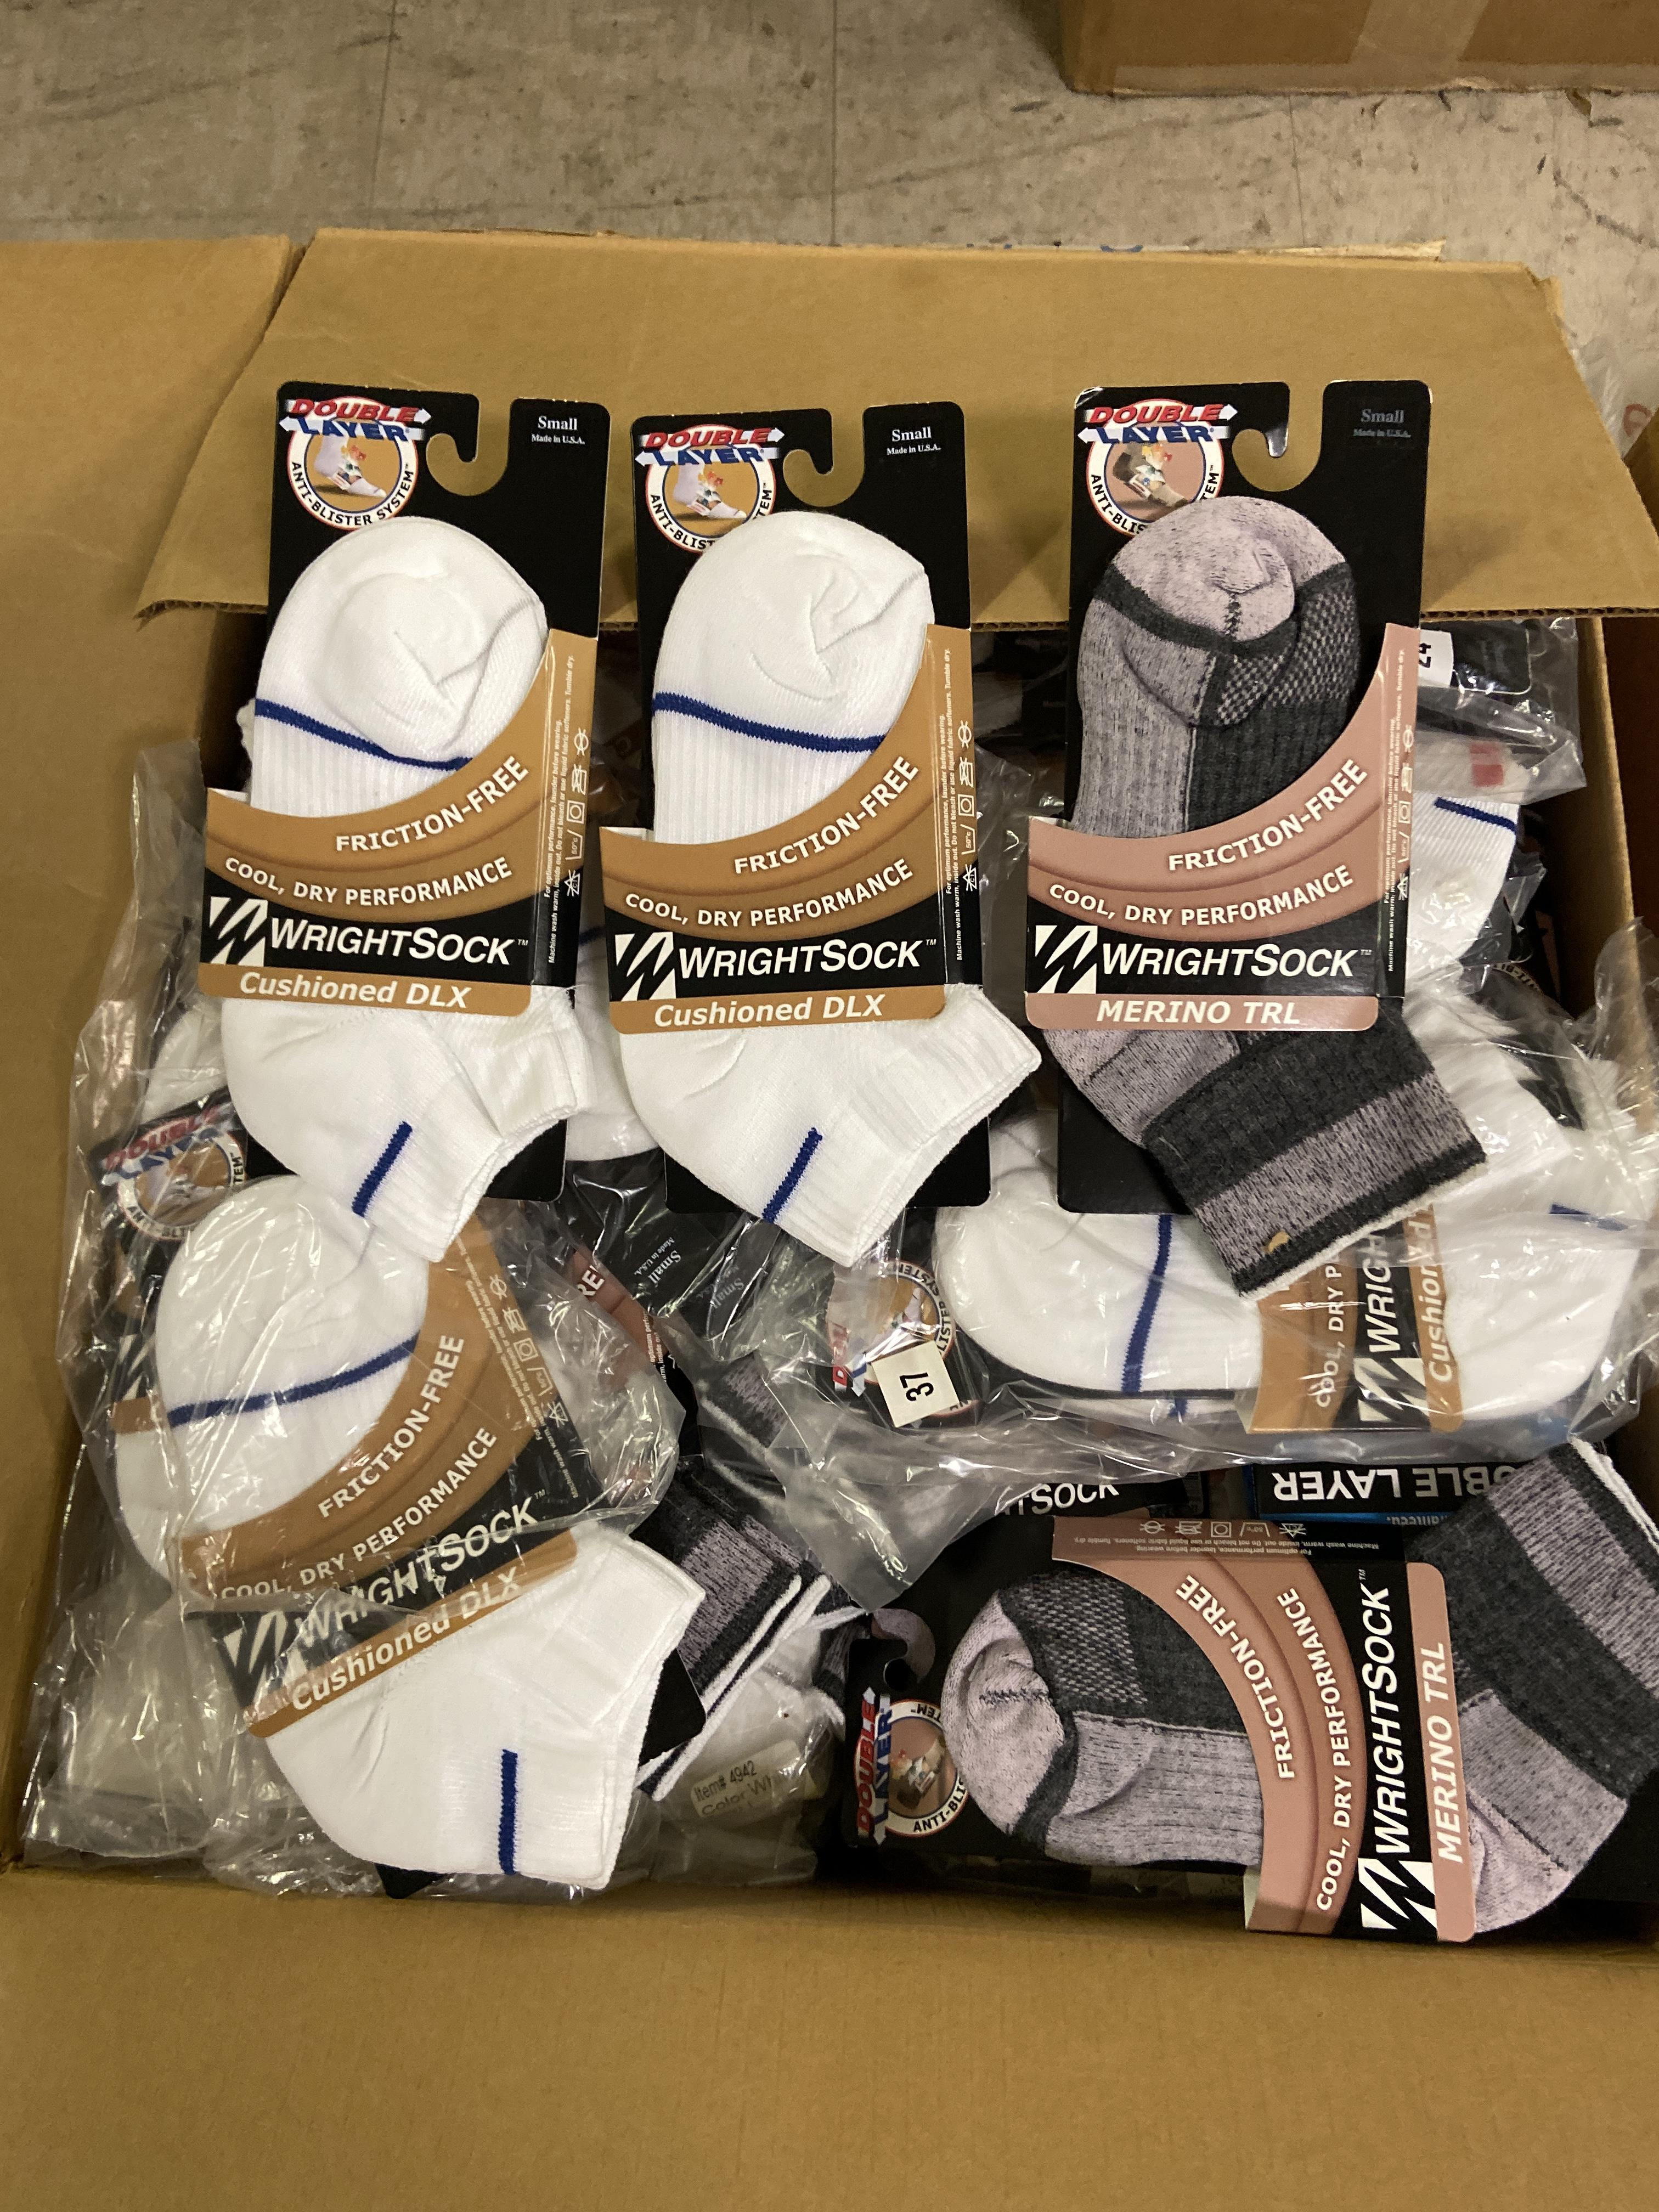 250+ packs of New Socks, Wrightsock Cushioned DLX and Merino TRL, Double Layer, Various Colors